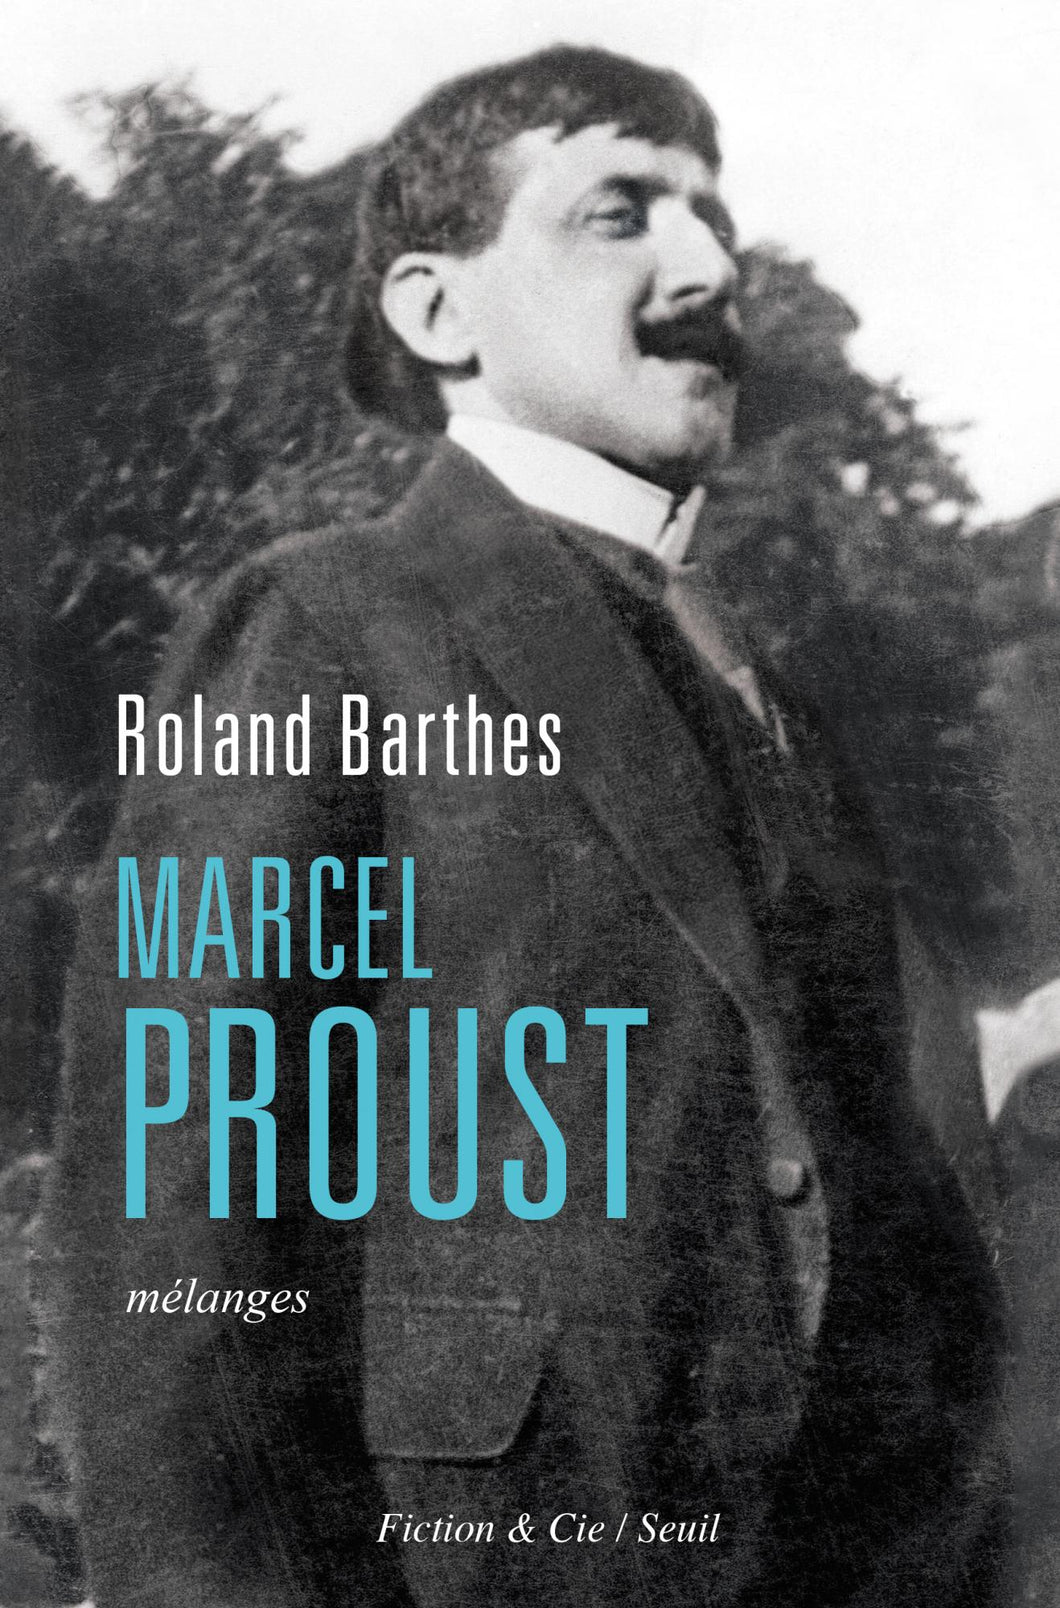 Roland Barthes - Marcel Proust, Mélanges